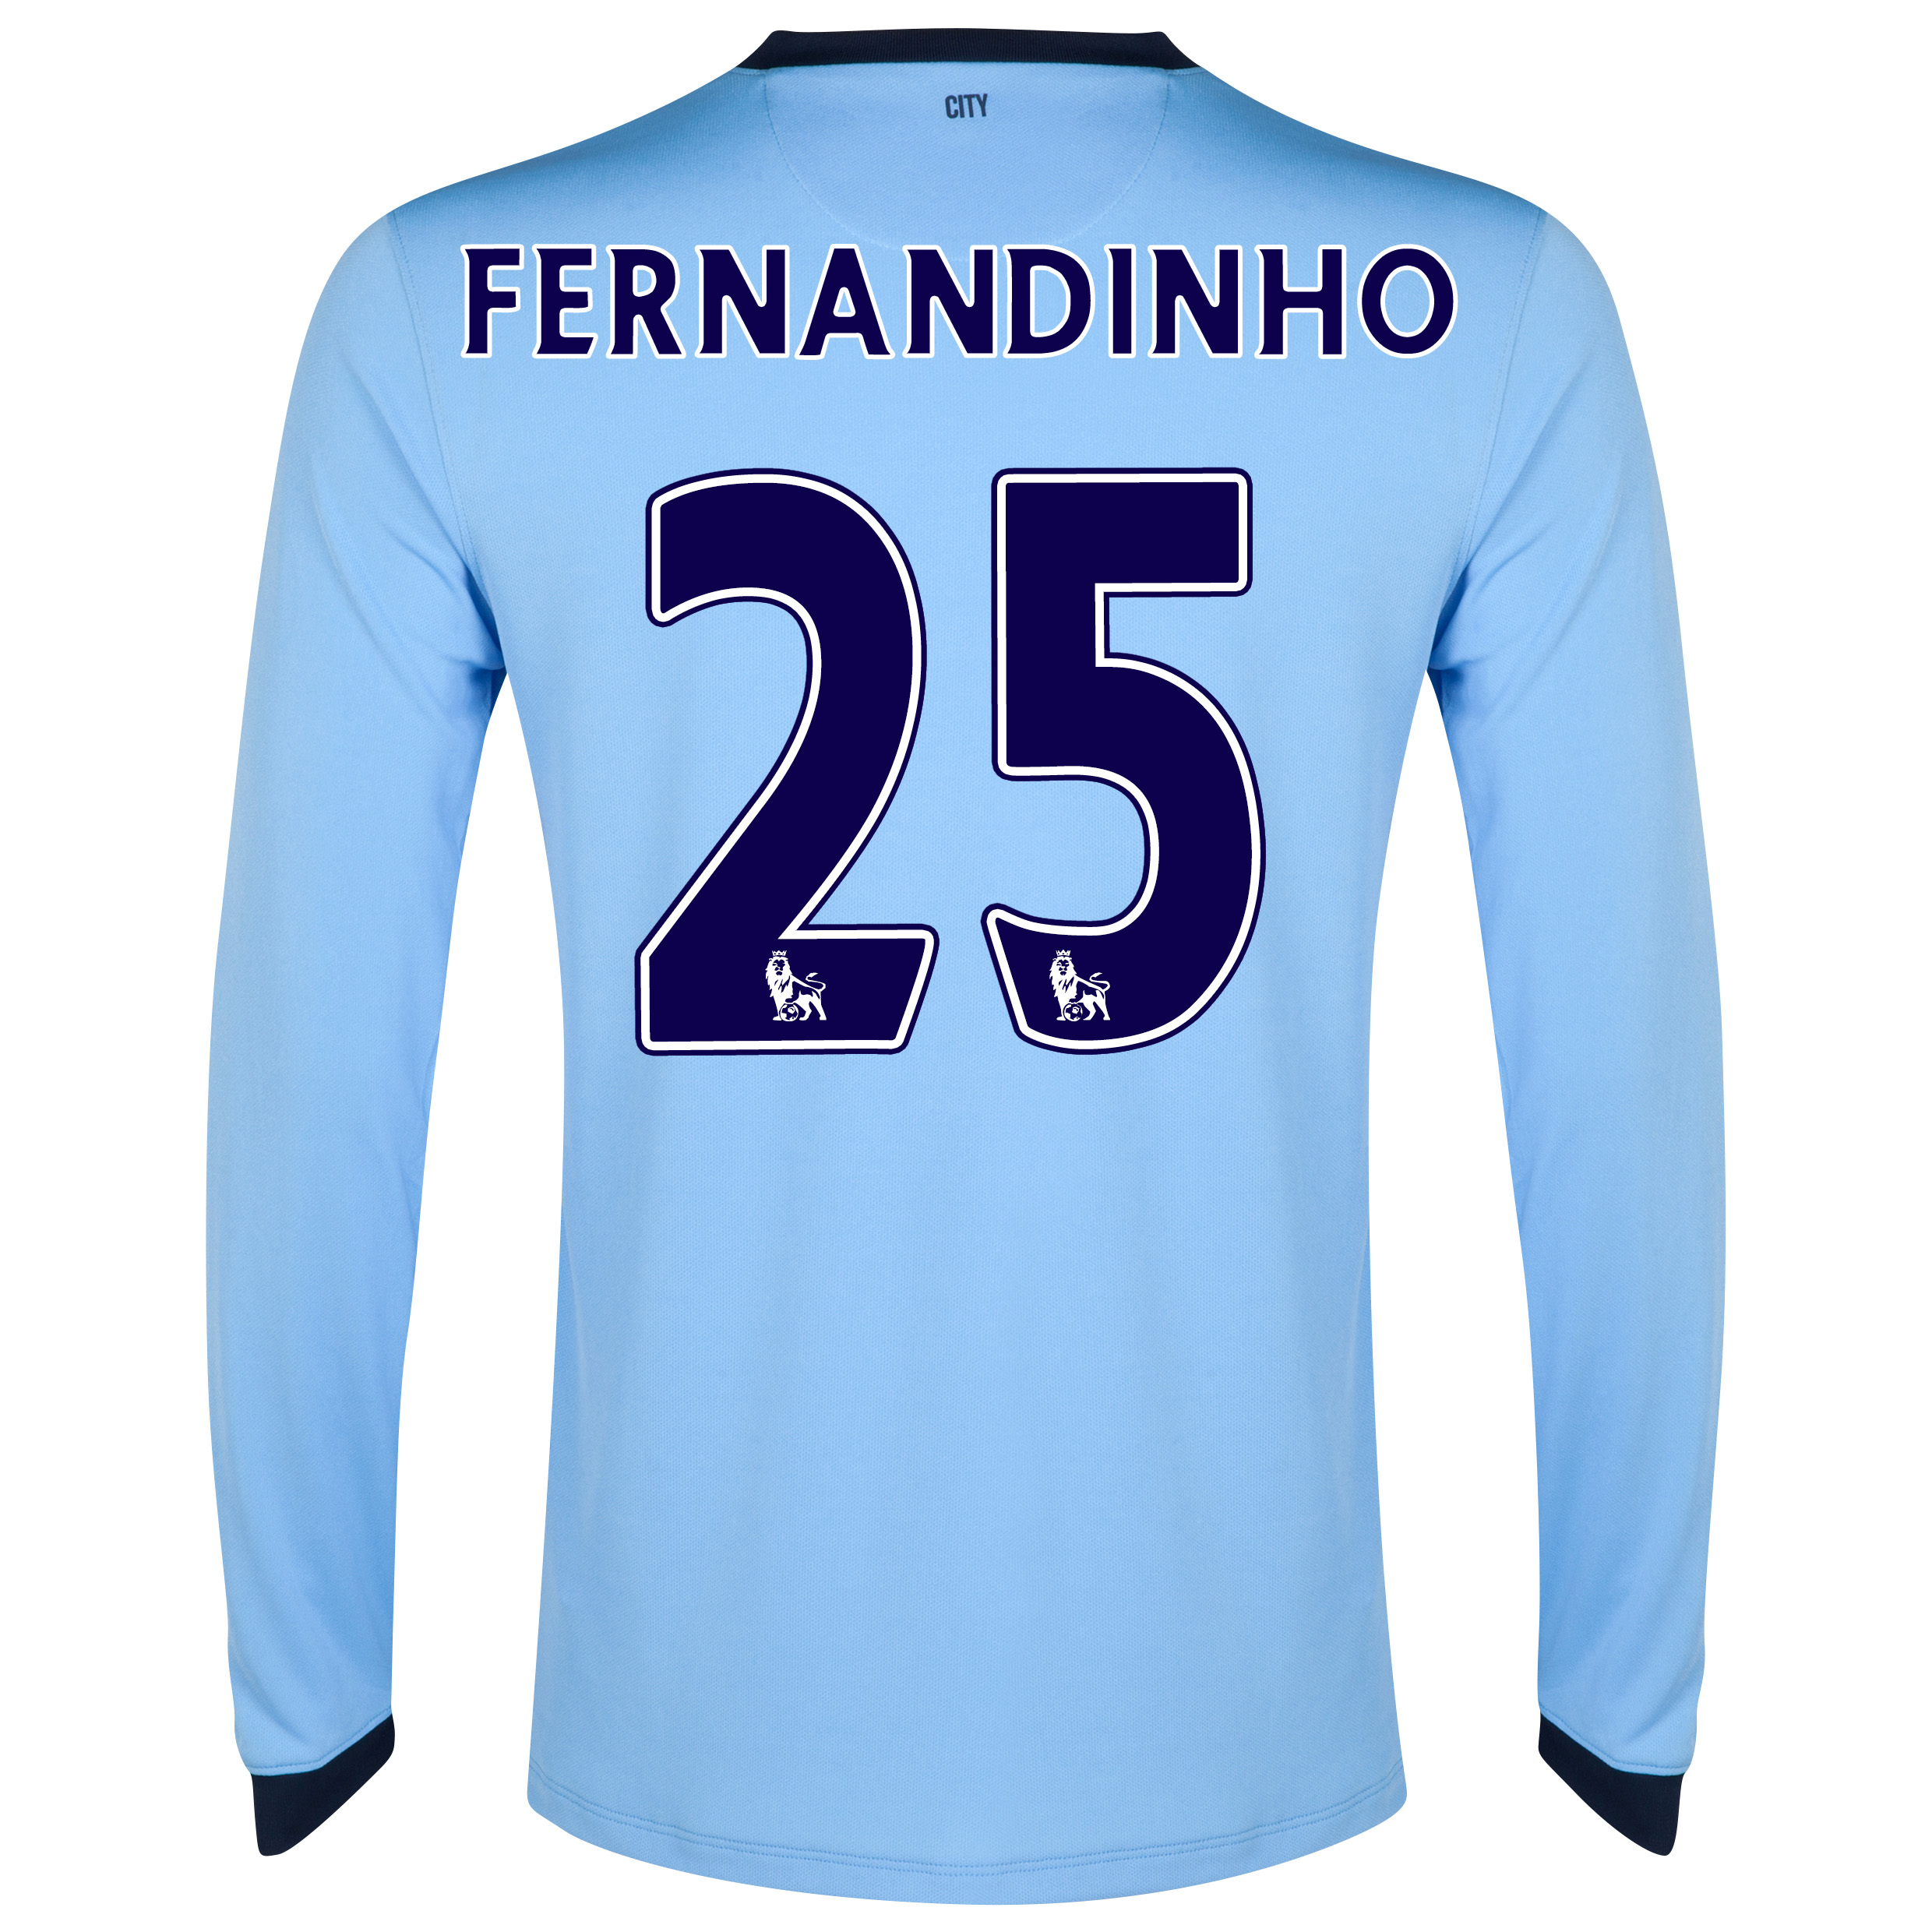 Manchester City Home Shirt 2014/15 - Long Sleeve Sky Blue with Fernandinho 25 printing